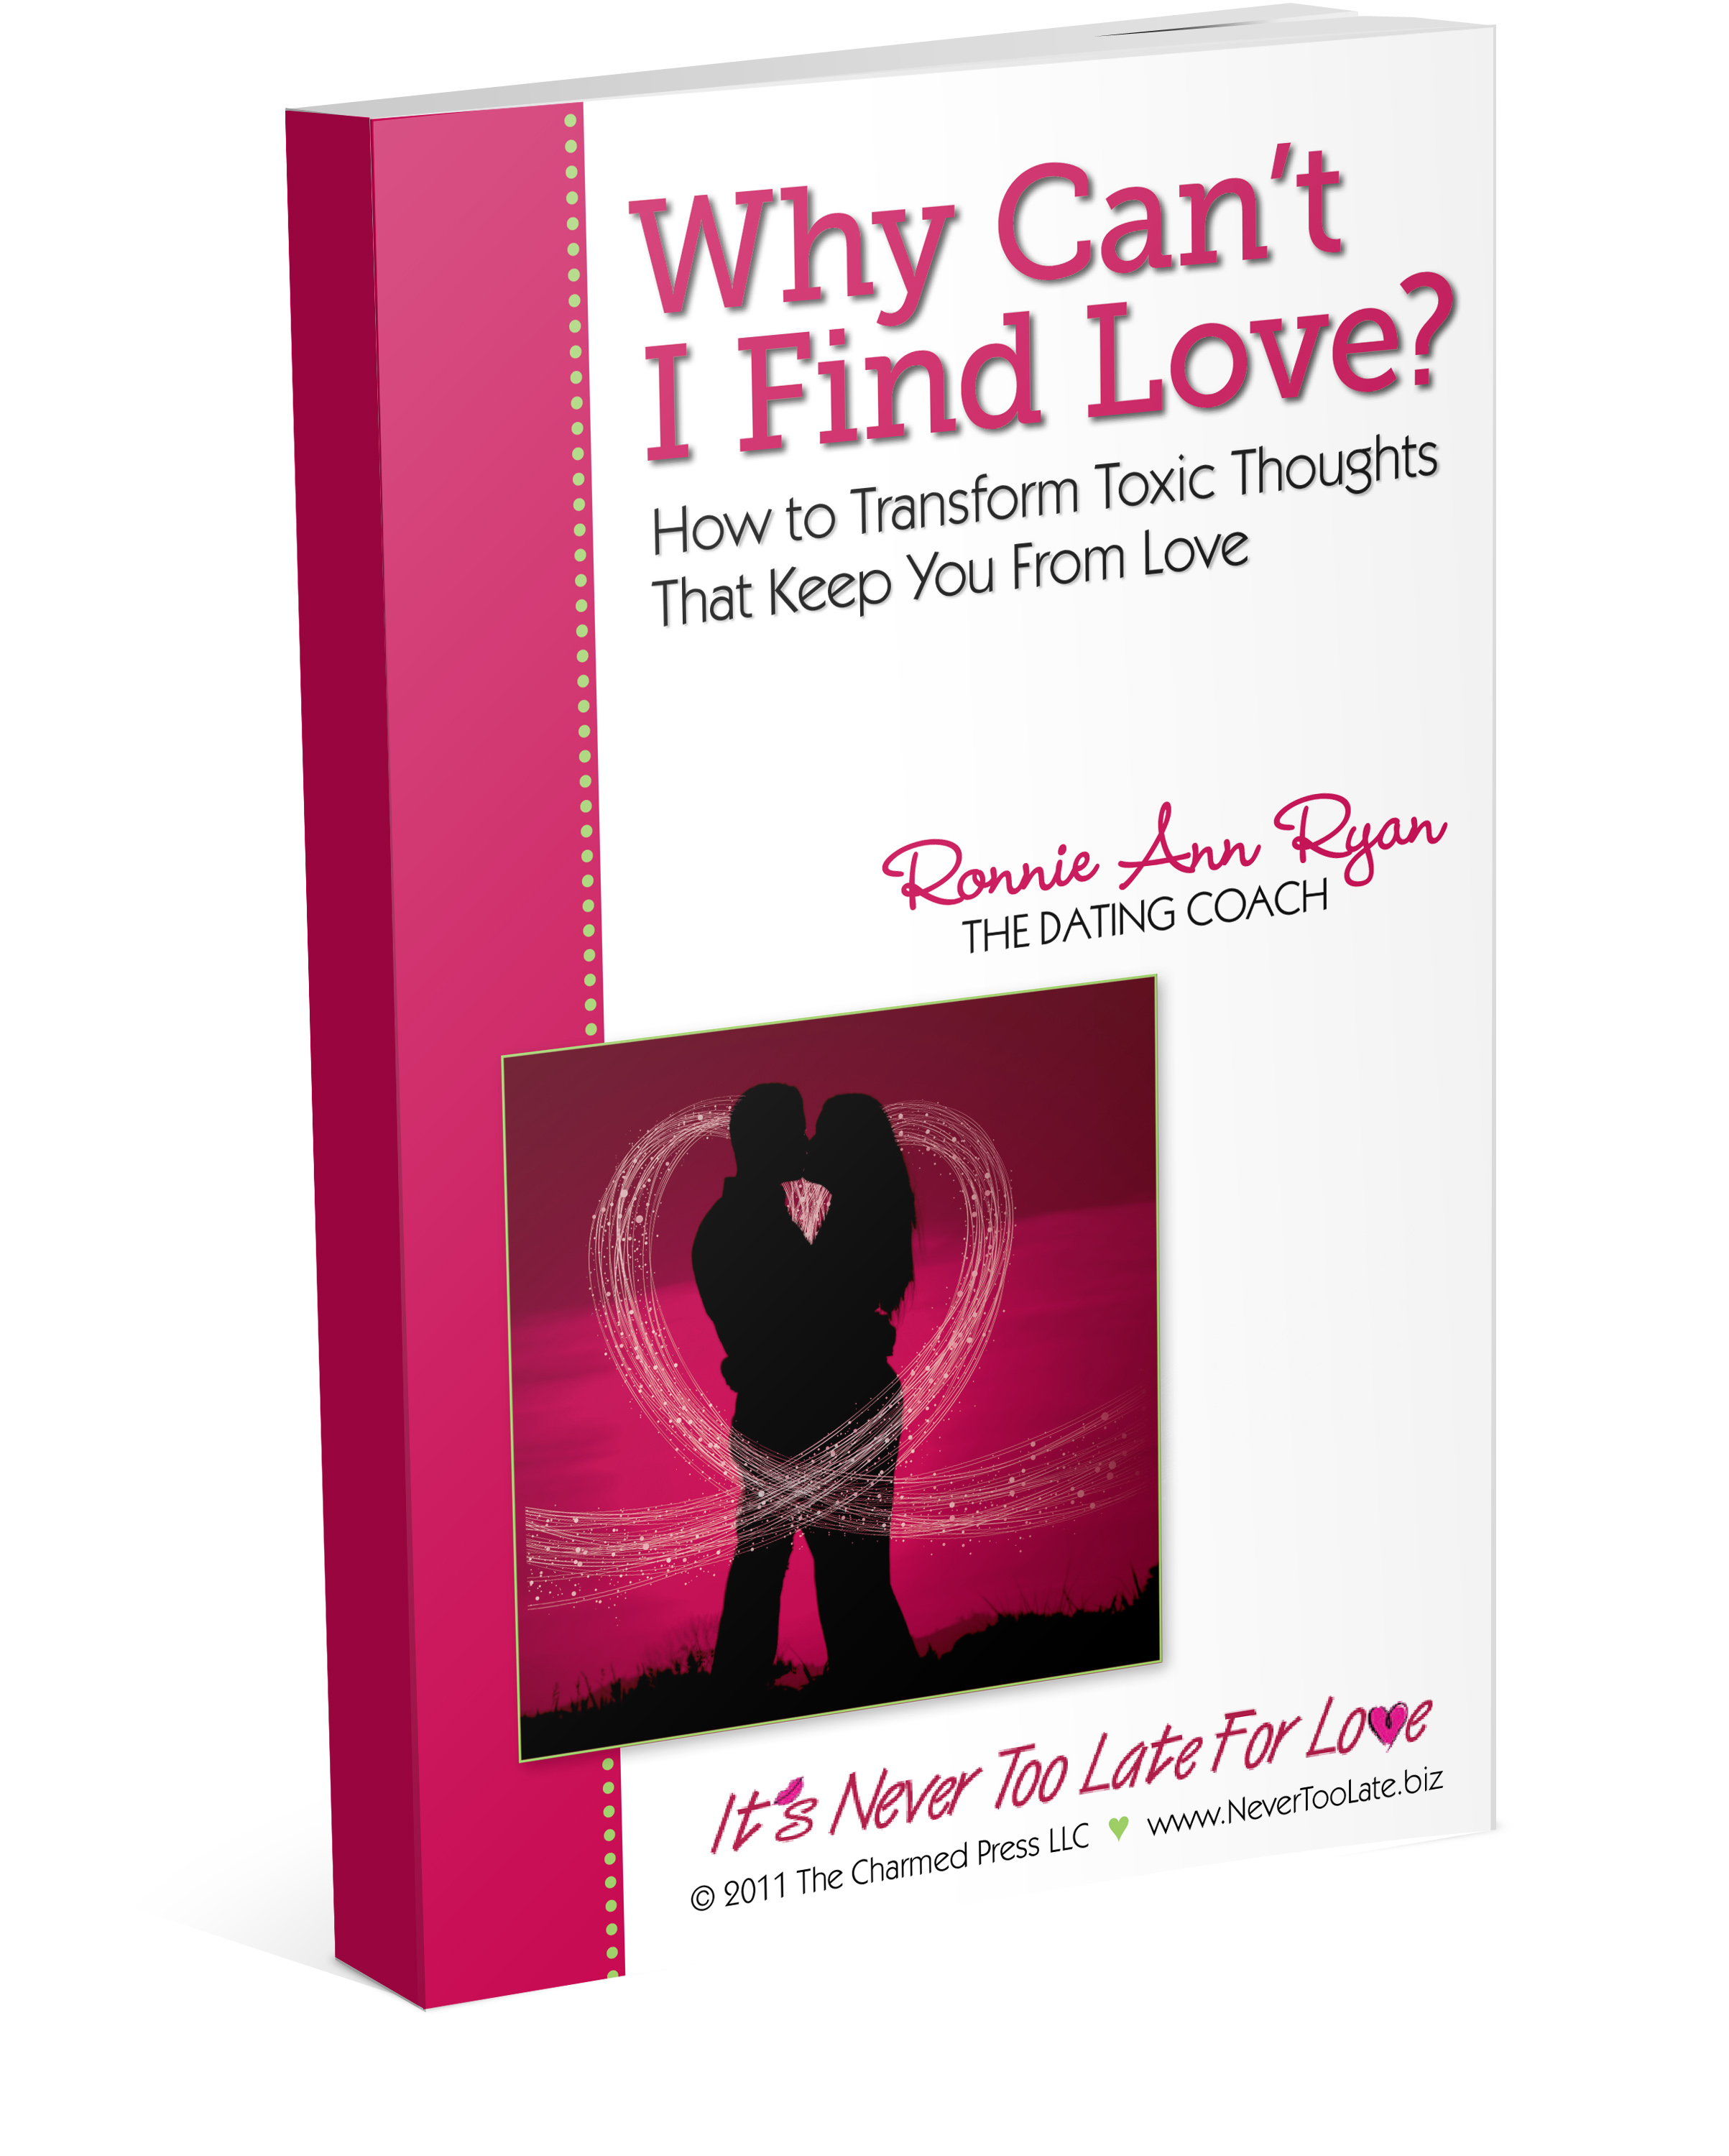 Why online dating coach